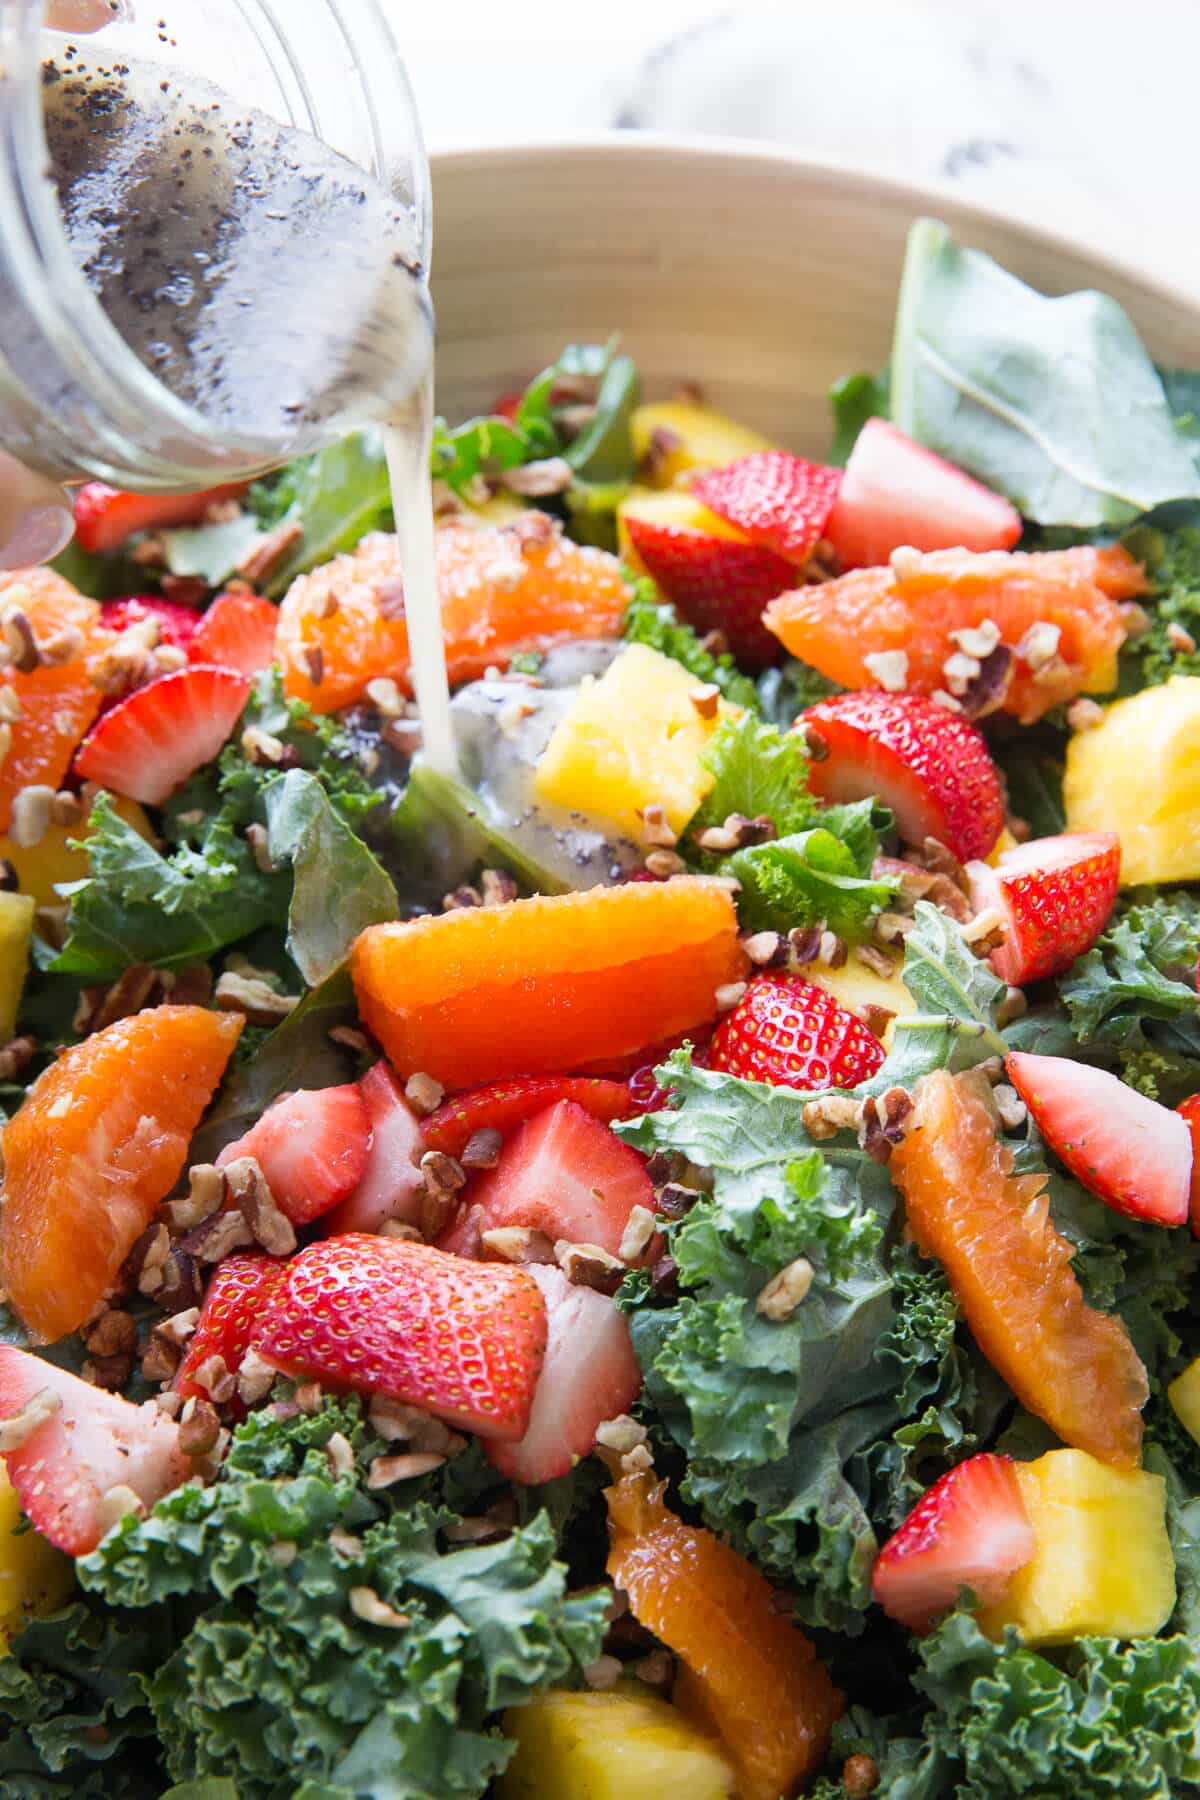 Citrus salad with fresh fruit and a mix of greens is colorful and filled with vitamins!